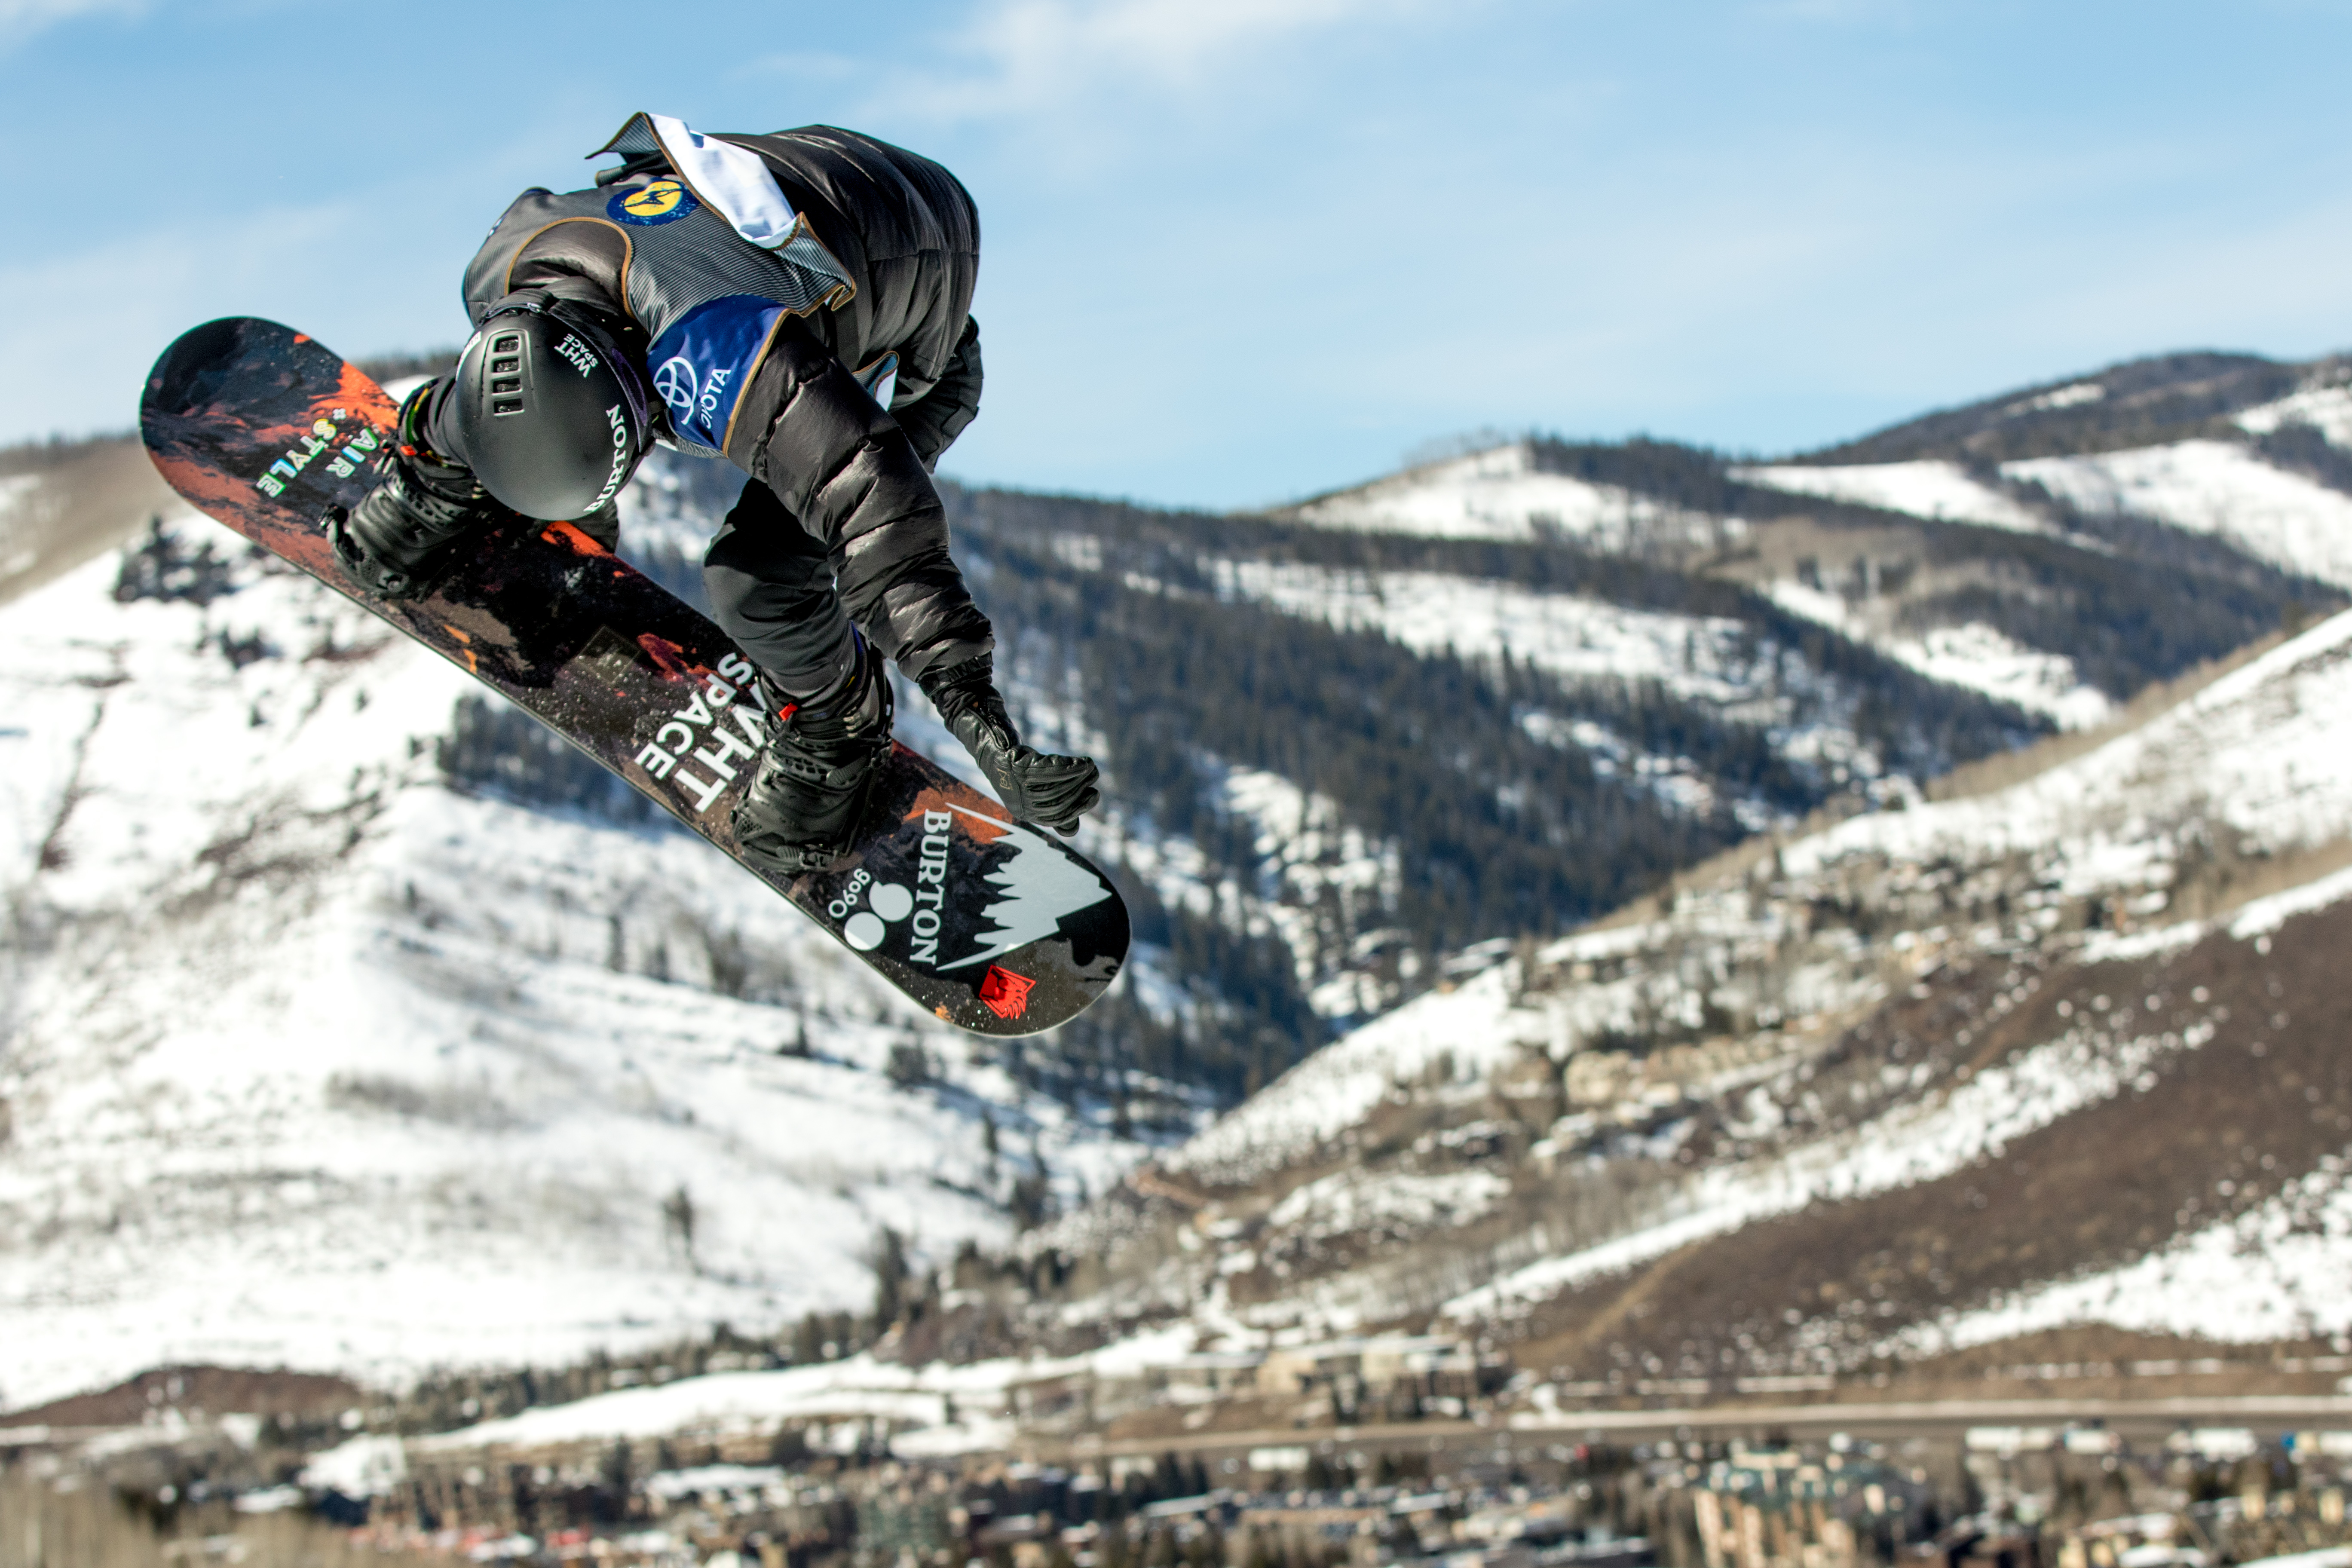 Shaun White competes during the Men's Halfpipe finals of the 2017 Burton U.S. Open on March 4, 2017 in Vail, Colo. Daniel Milchev—Getty Images